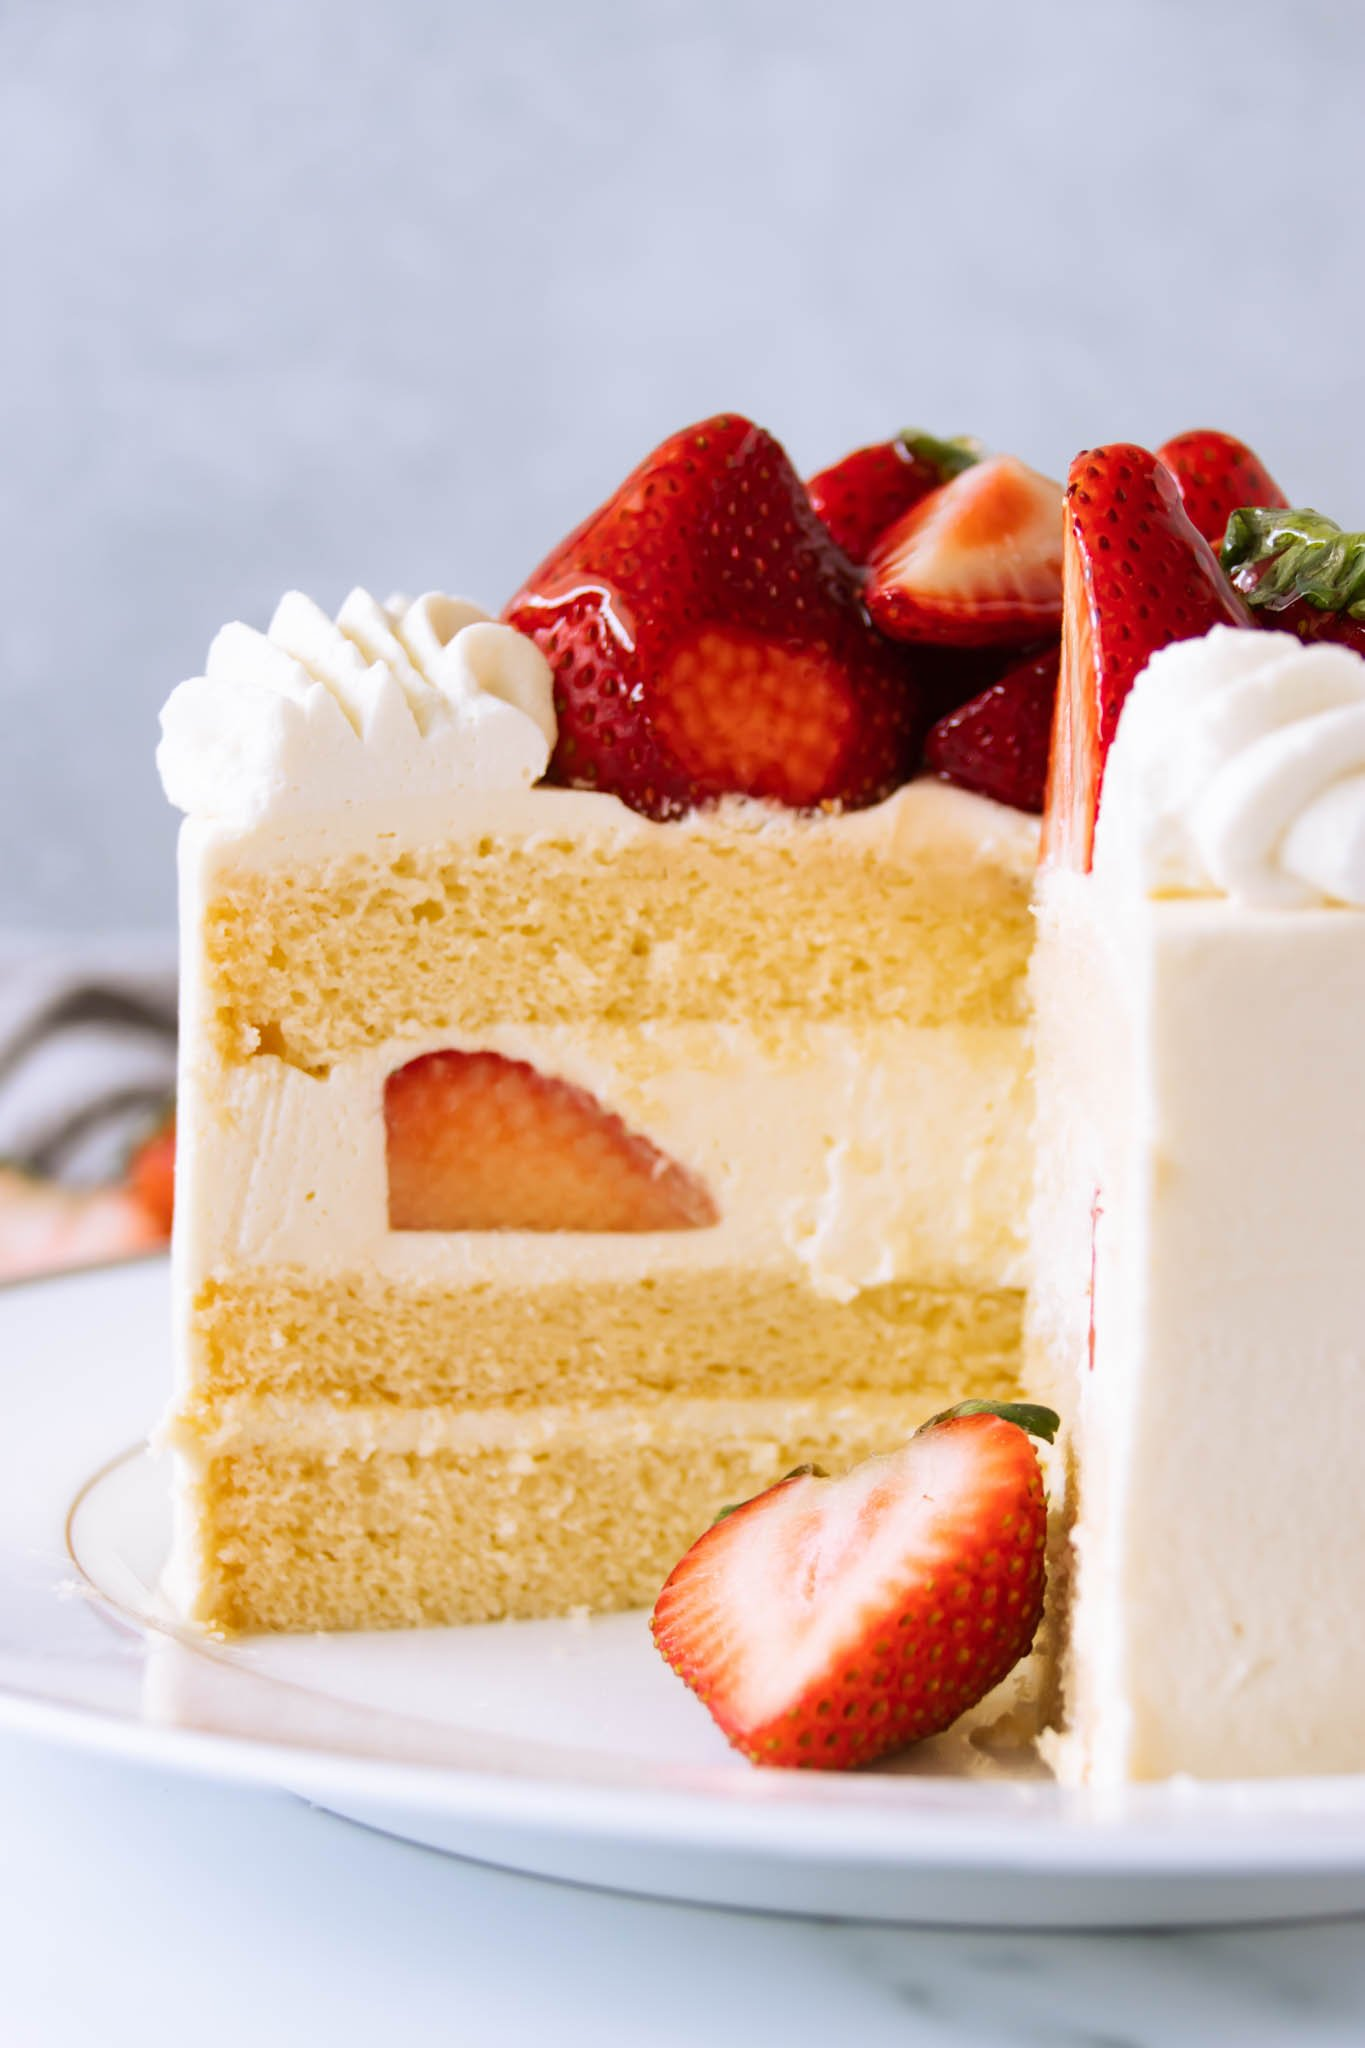 Sponge cake layers filled with whipped cream and fresh strawberries for a Japanese-style strawberry shortcake